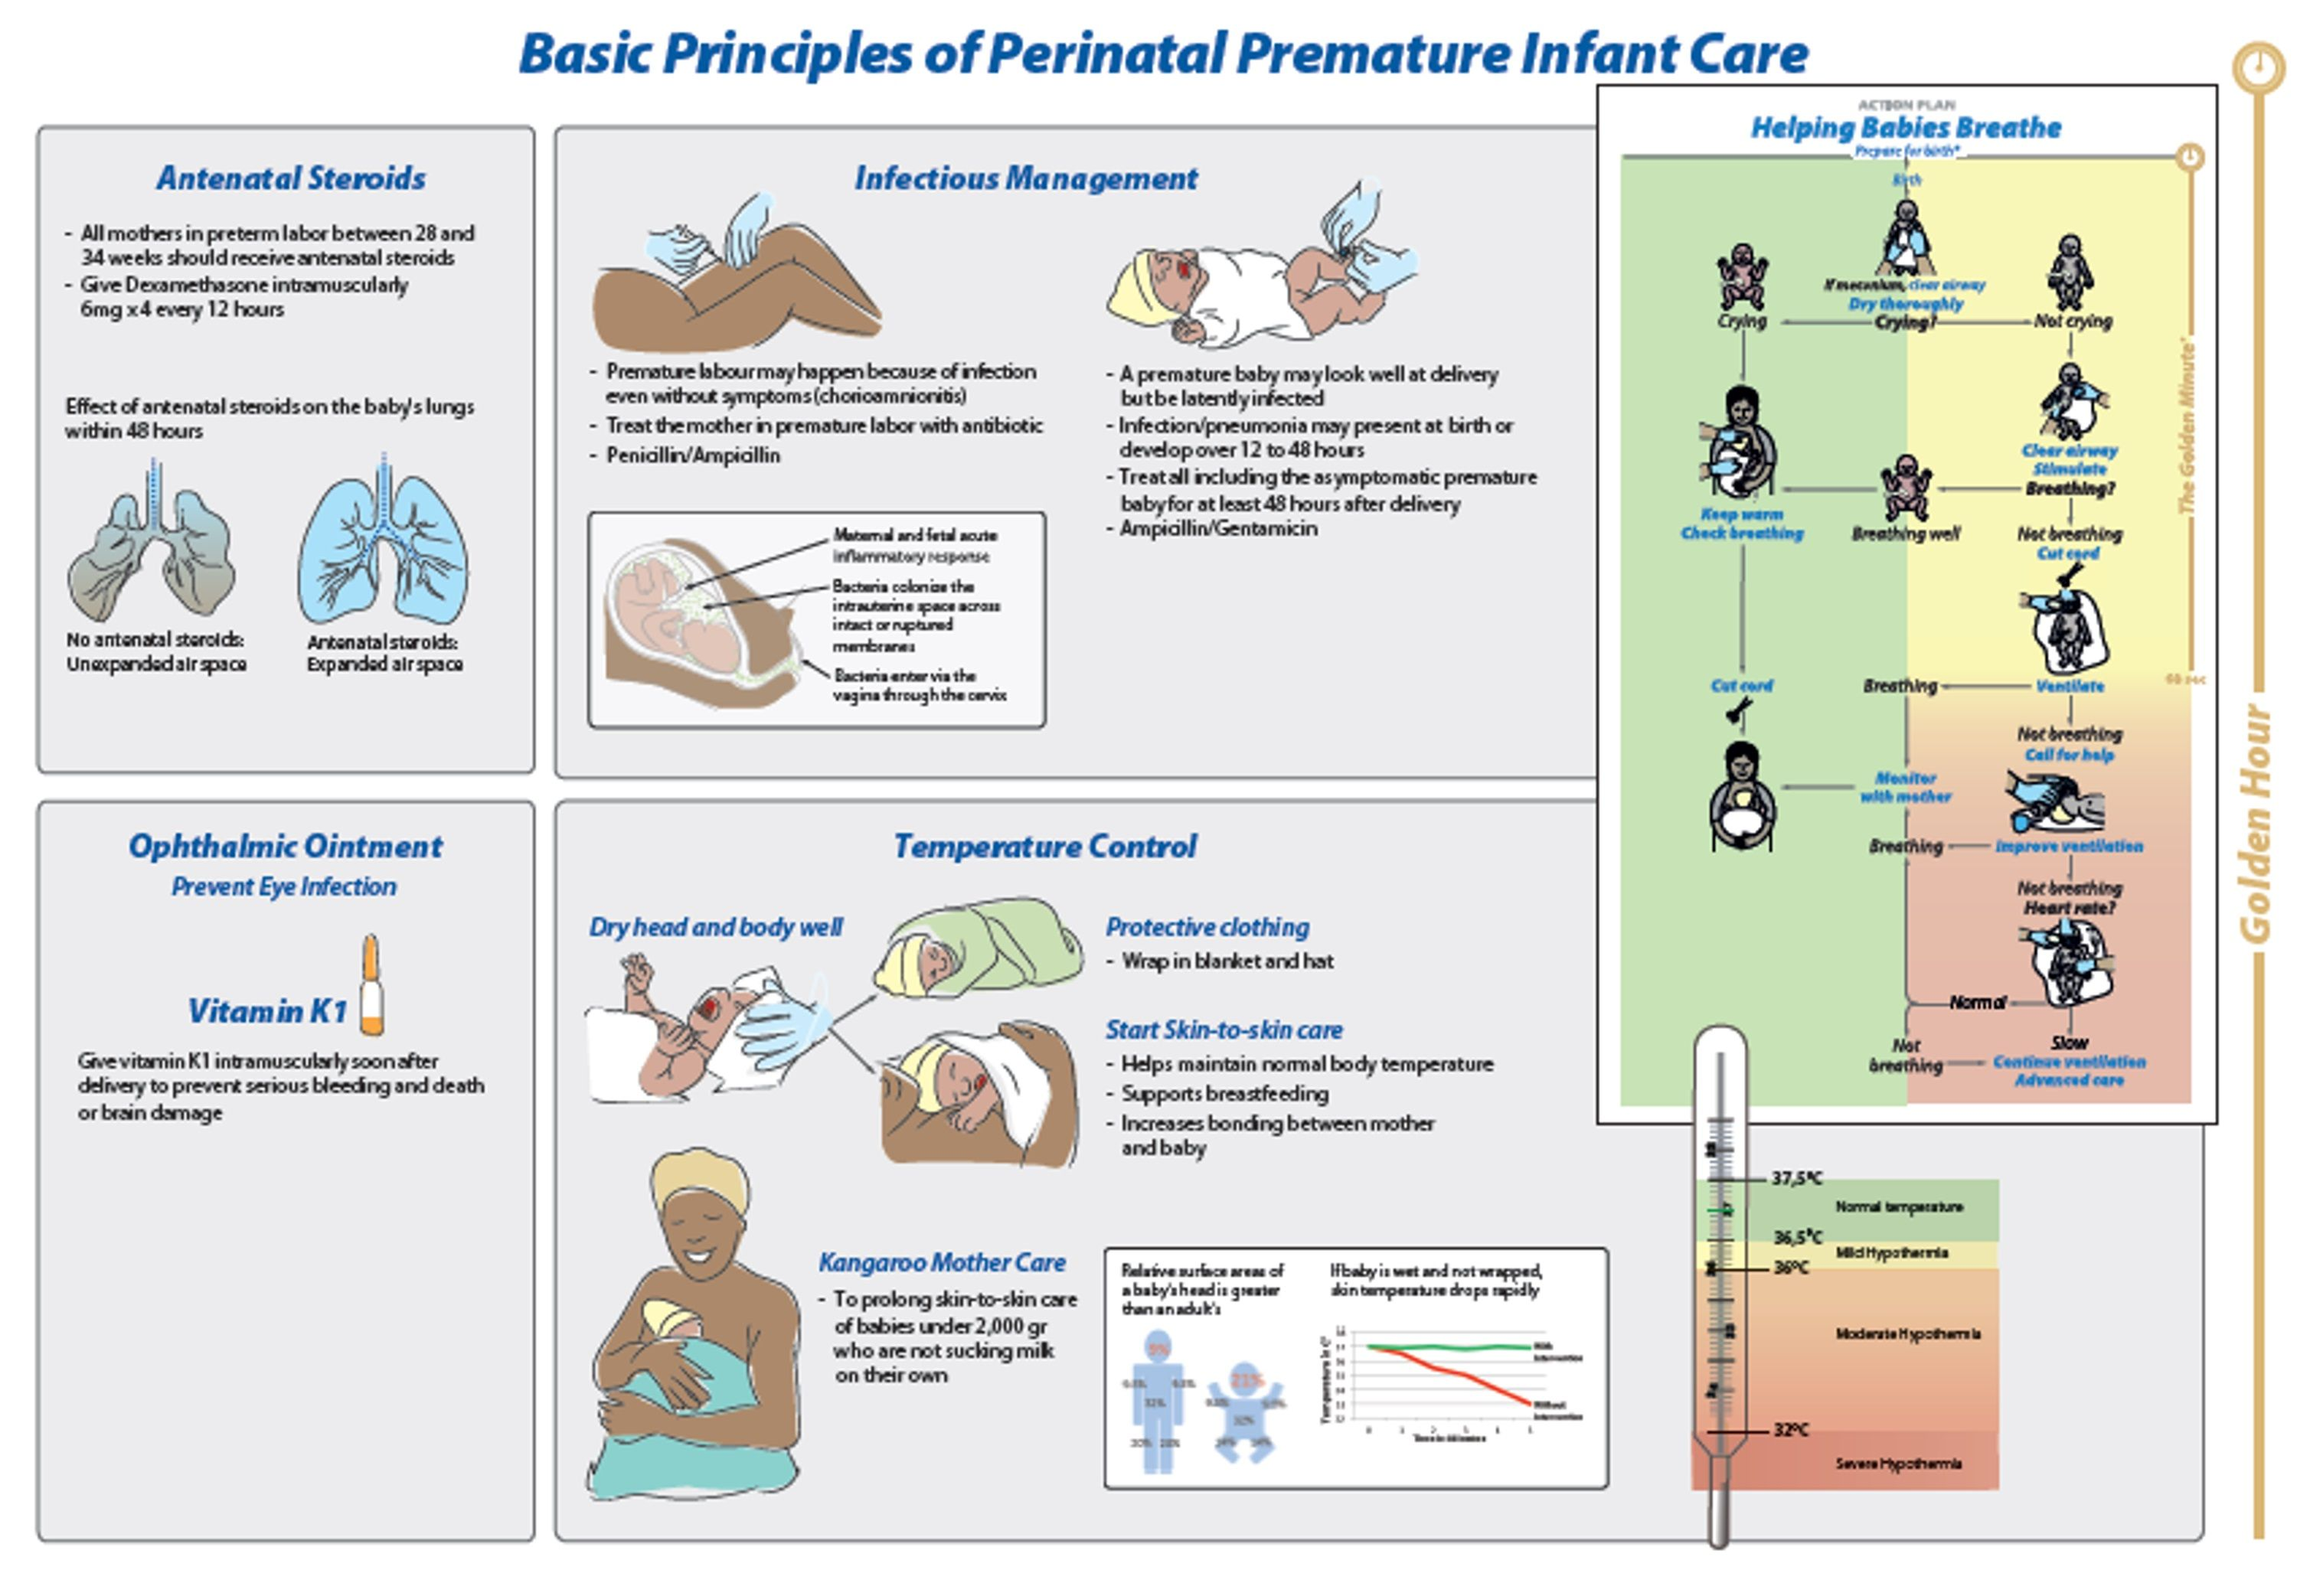 - Basic Principles of Perinatal Premature Infant Care